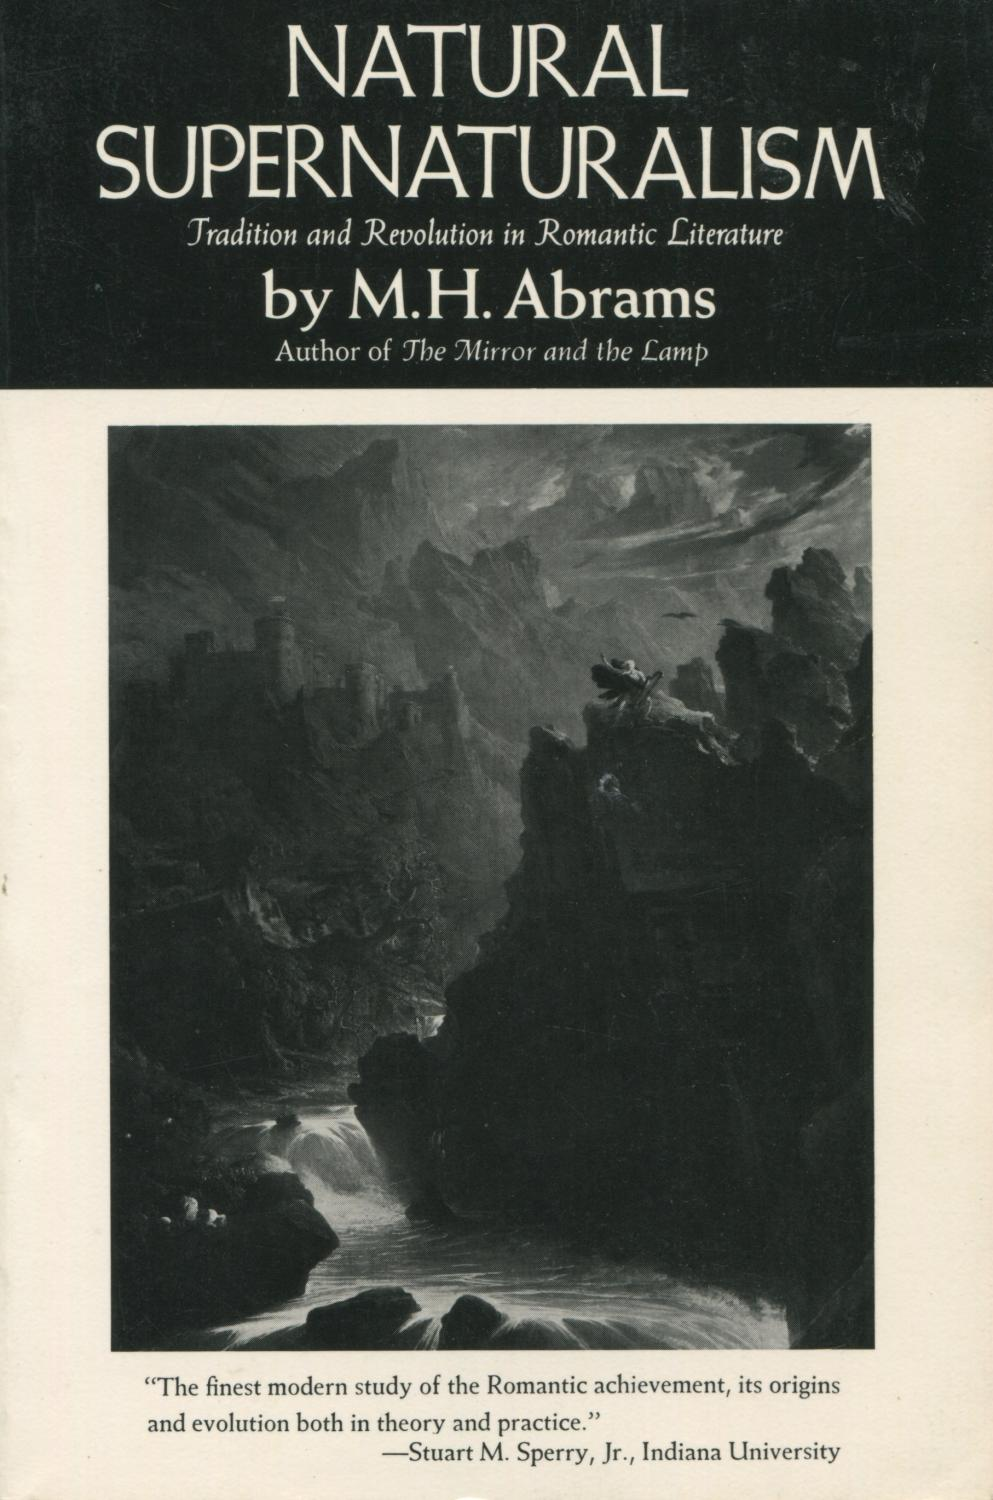 cover of Natural Supernaturalism Tradition and Revolution in Romantic Literature by M H Abrams